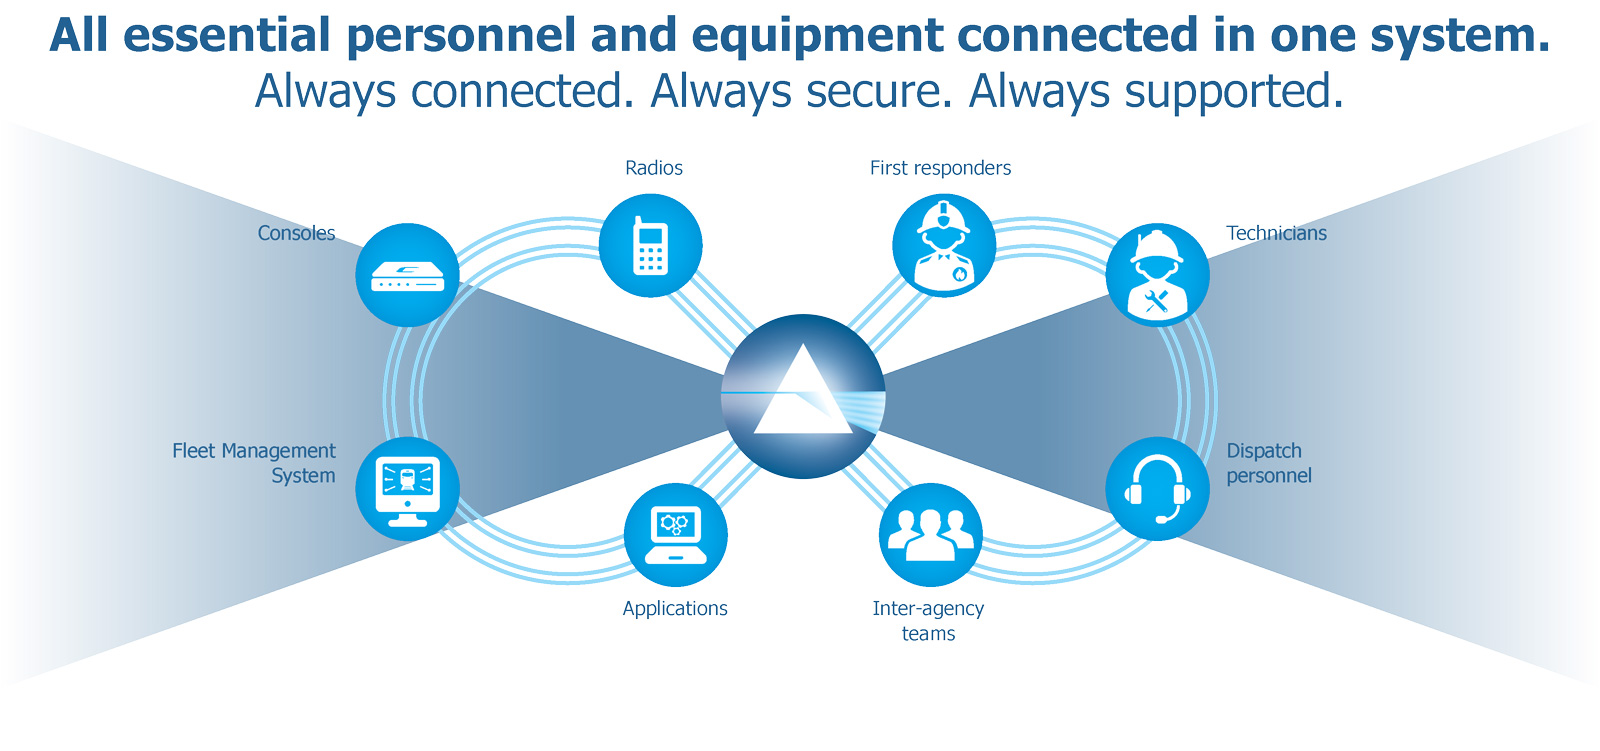 Infinity sign with various icons showing that users and equipment are always connected, secure and supported with Cobham SATCOM's hybrid PTT solution